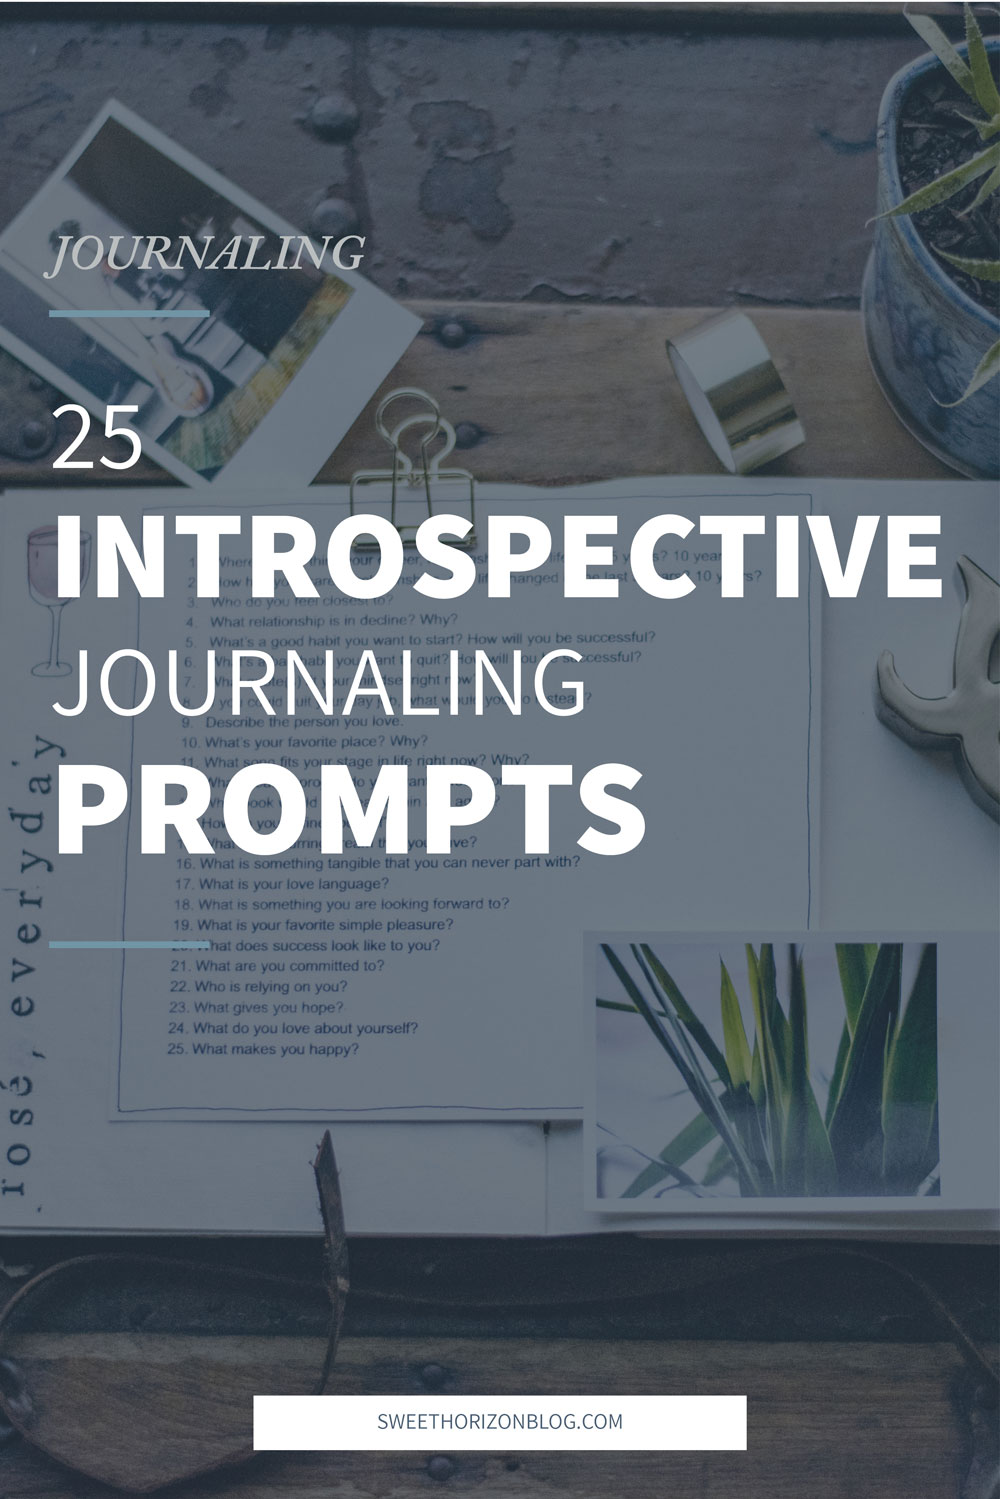 25 Introspective Journaling Prompts from www.sweethorizonblog.com